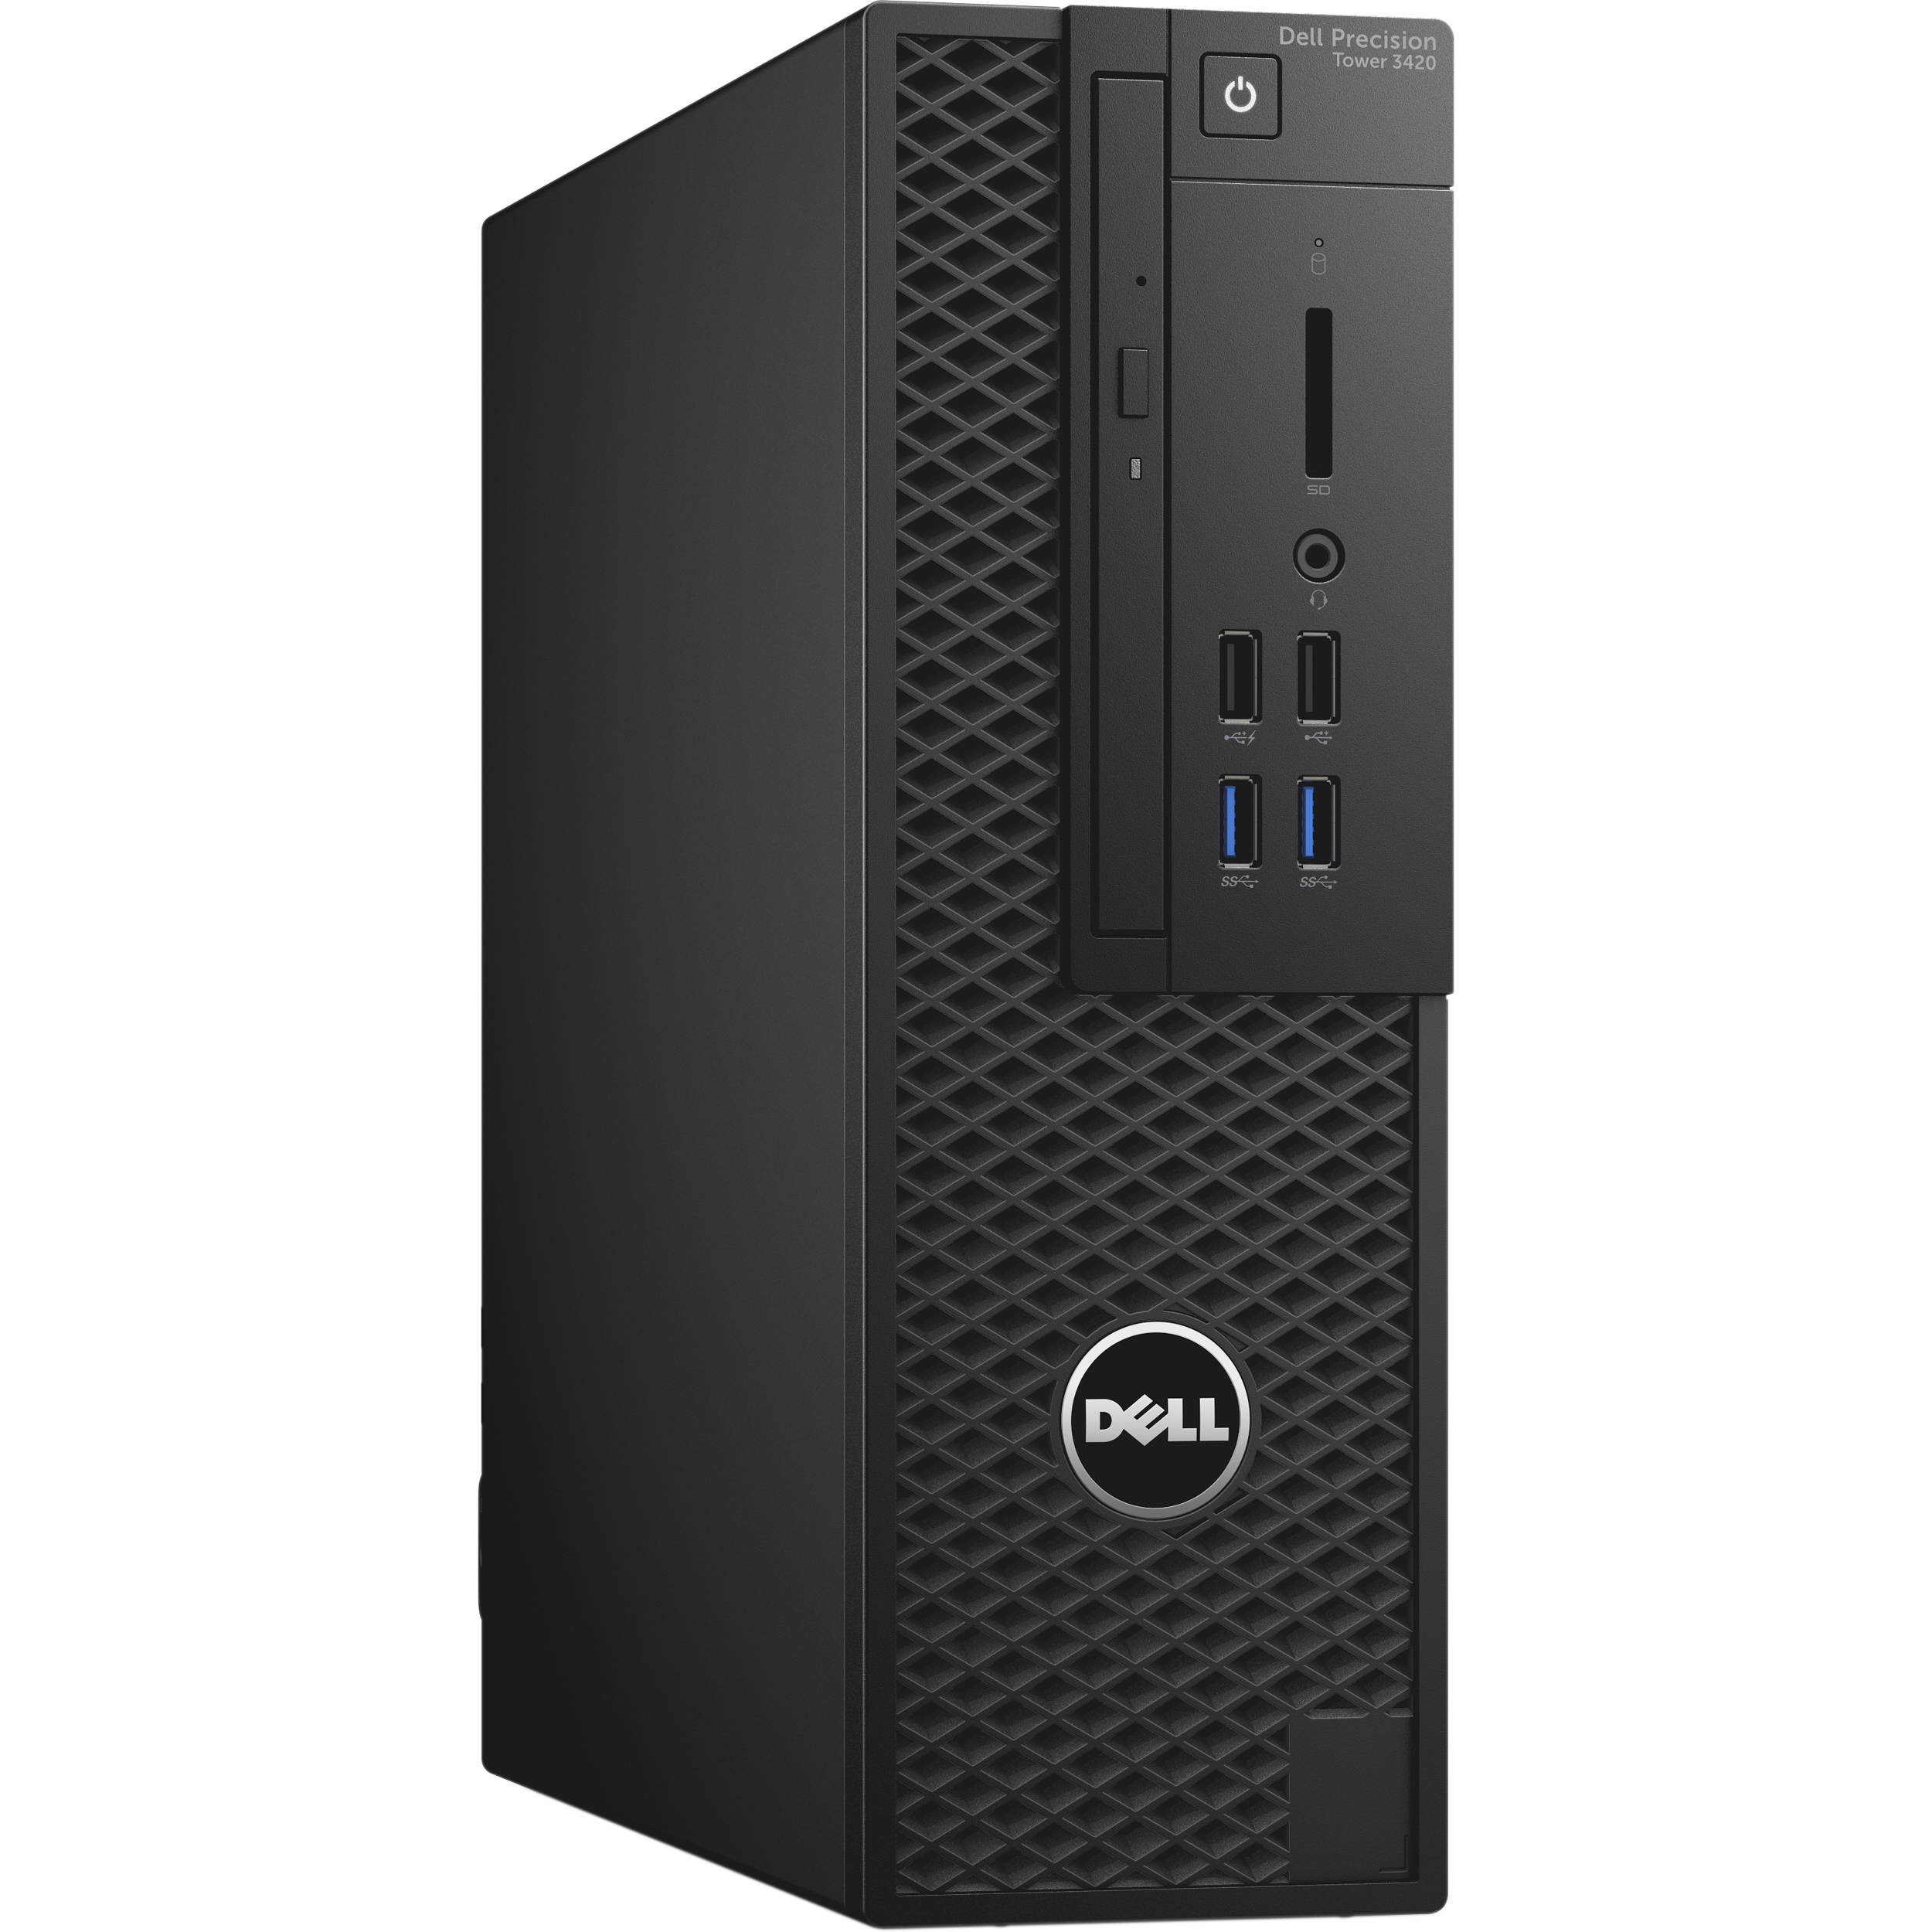 MÁY CHỦ DELL PRECISION T3420 WORKSTATION CORE™ I5-6500 3.2GHZ